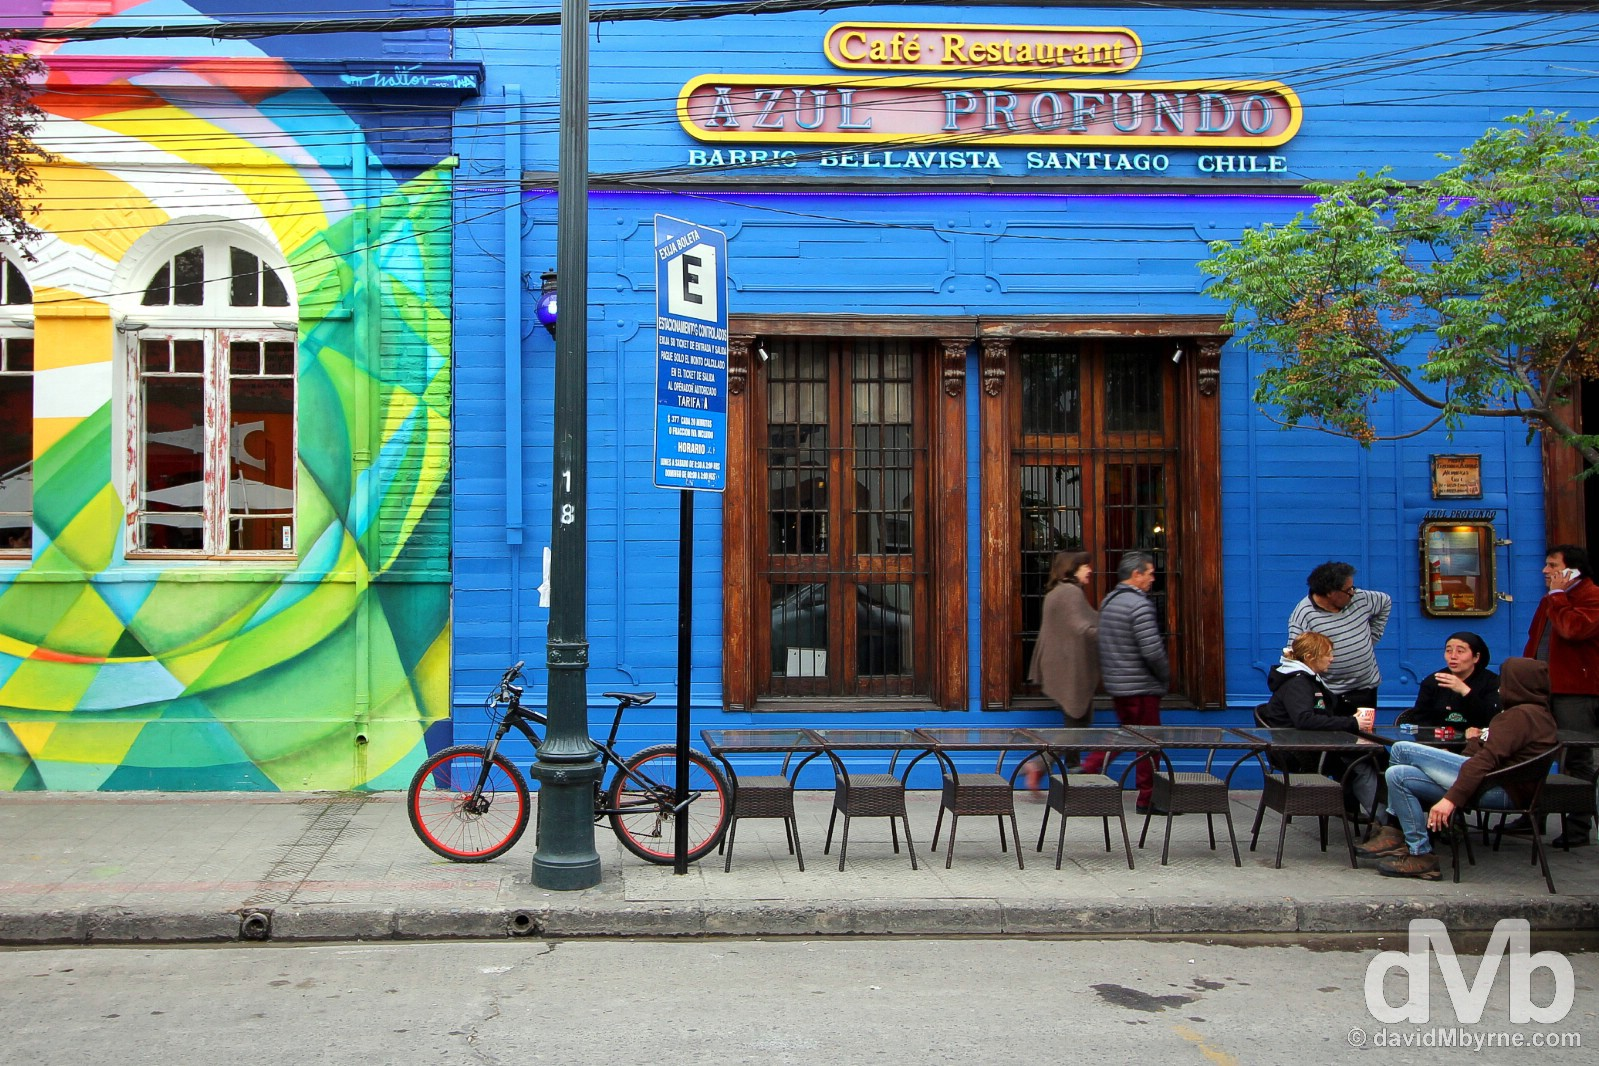 Colourful & bohemian Barrio Bellavista in Santiago, Chile. October 6, 2015.